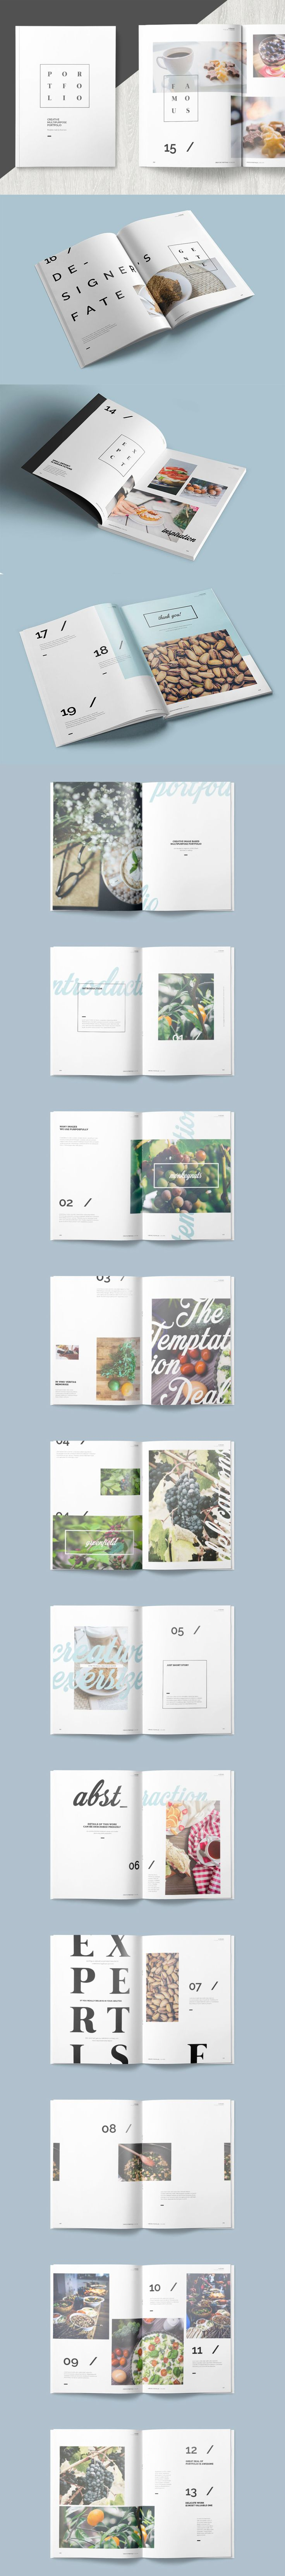 Multipurpose Portfolio Brochure Template InDesign INDD - 32 Pages, A4 International And Us Letter Size - Unlimited Downloads